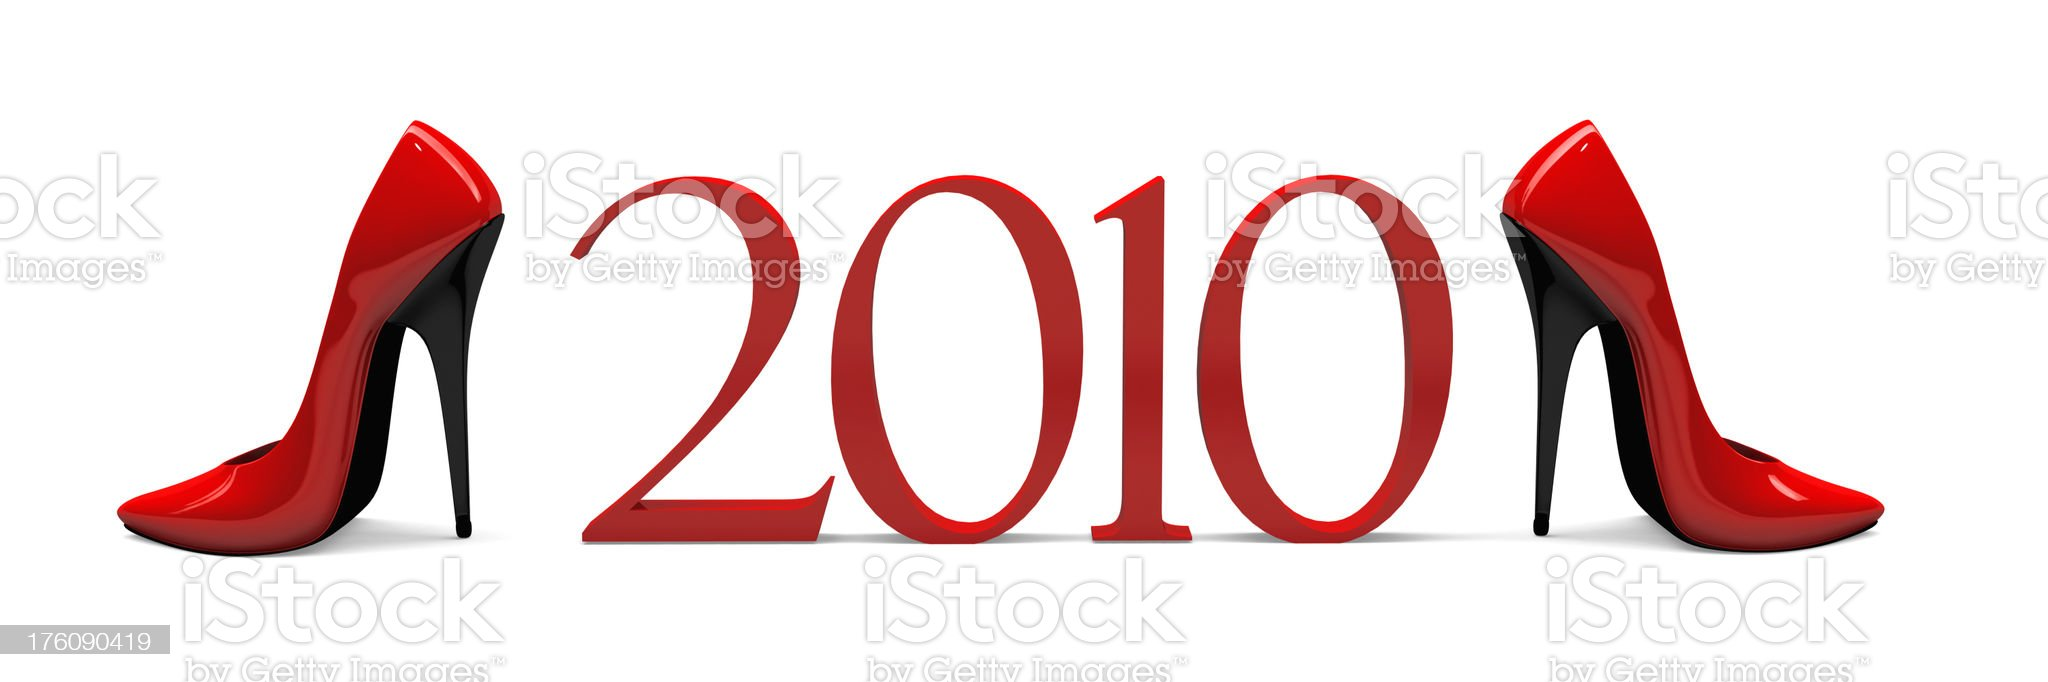 3D 2010 with Pair Red High Heels royalty-free stock photo